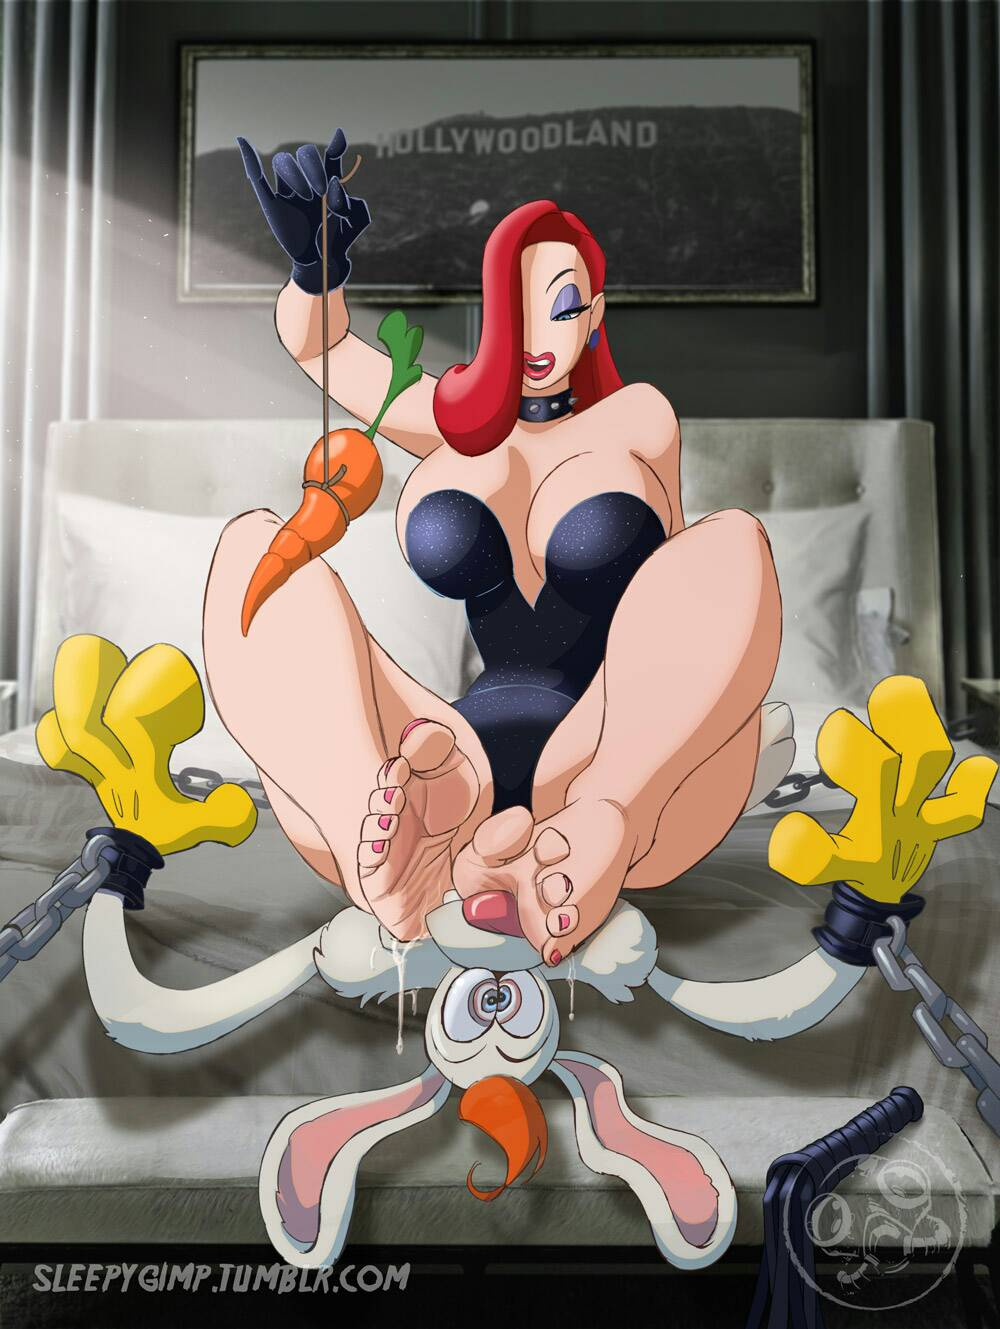 jessica framed commando rabbit roger rabbit who Project x love potion disaster animated gif